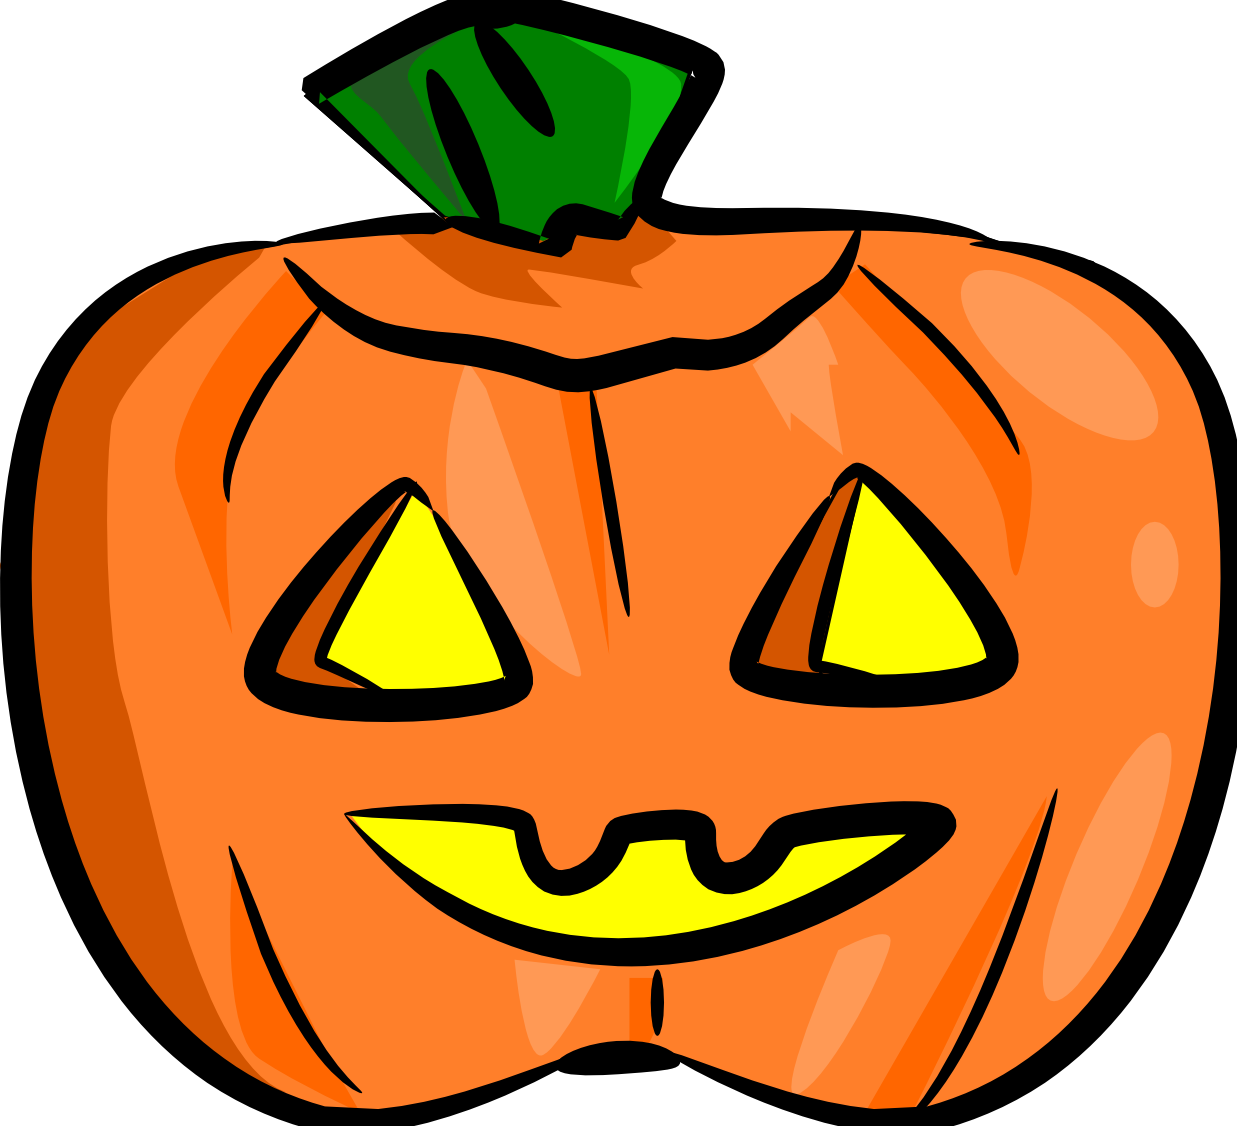 Pumpkin faces clipart picture freeuse library Cute Jack O Lantern Clip Art | Clipart Panda - Free Clipart Images picture freeuse library